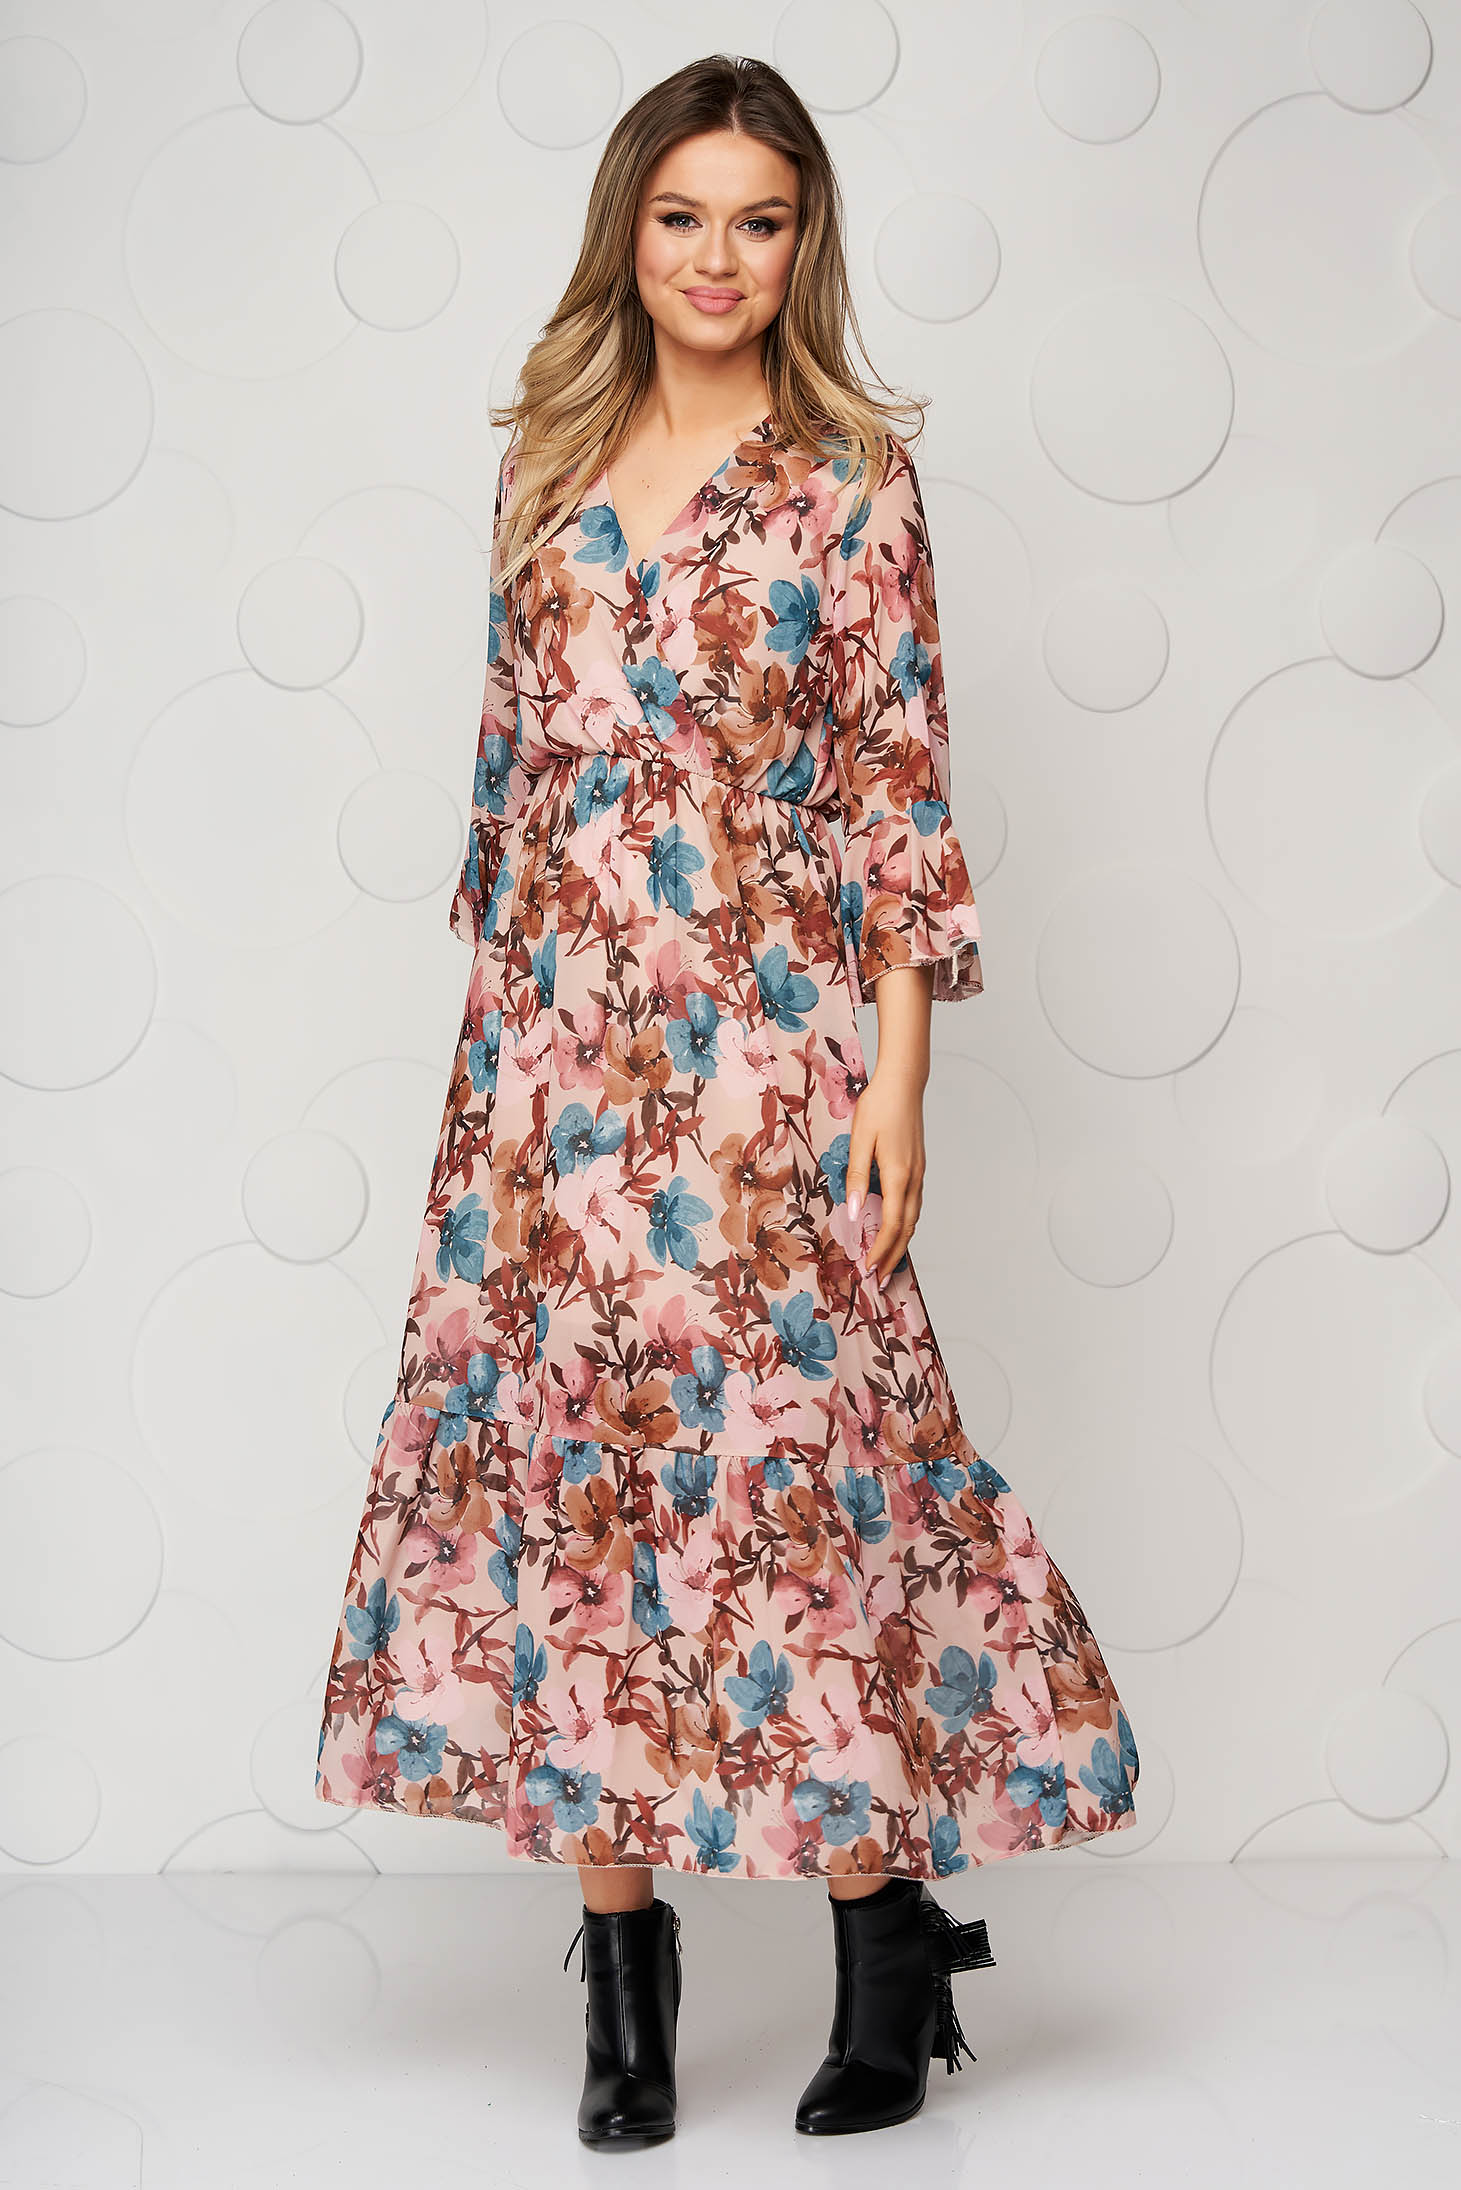 Casual midi dress cloche with elastic waist with ruffle details